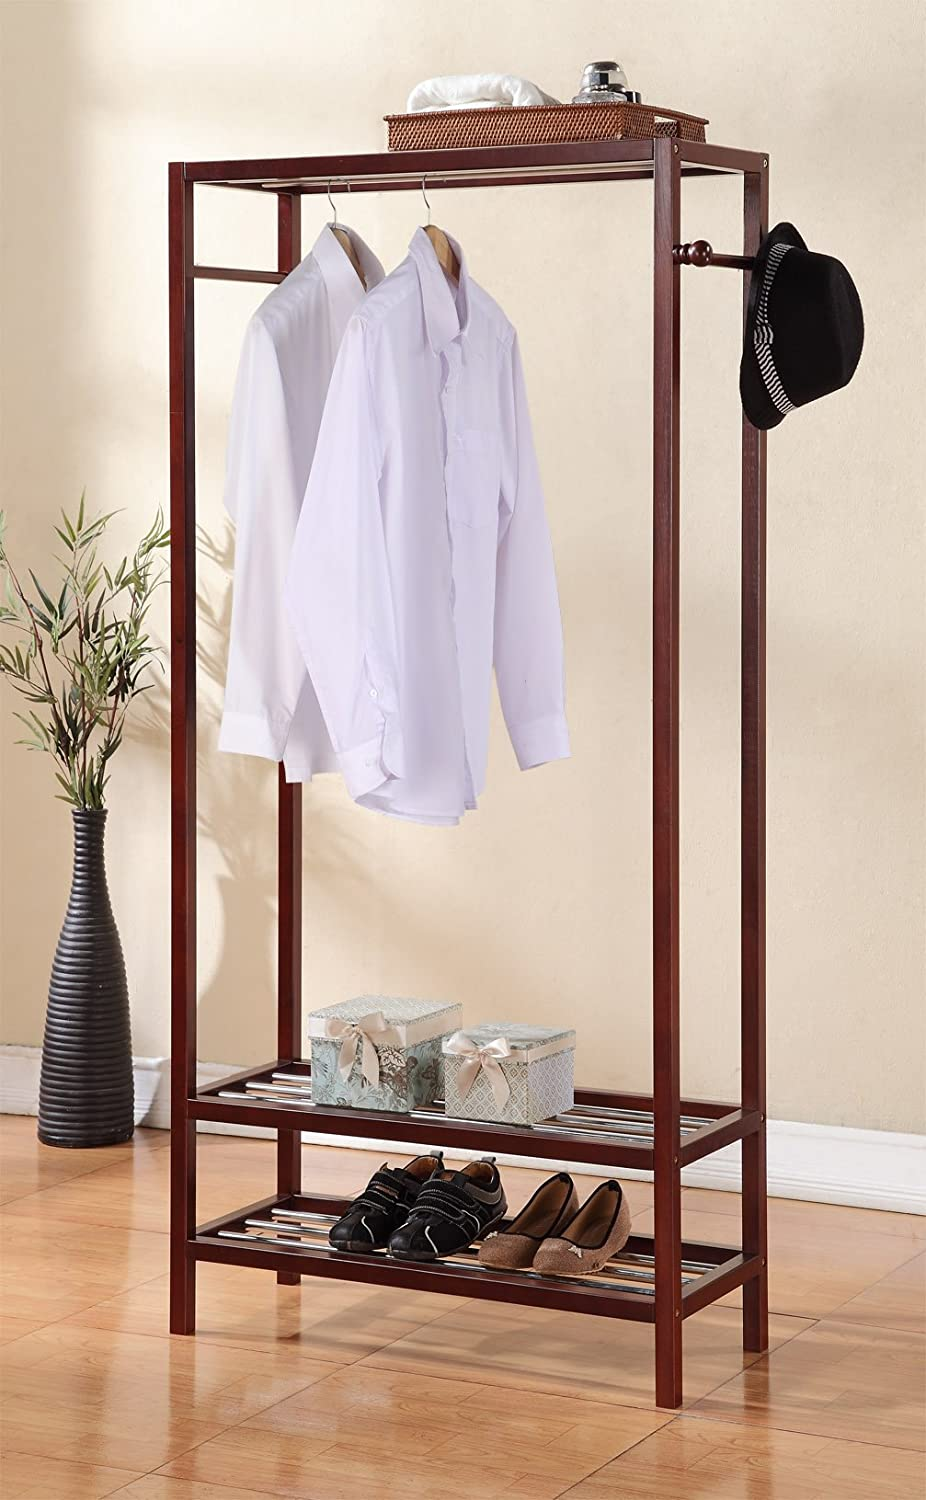 Legacy Decor 2 Tier Shelves Shoe Garment Coat Rack Hanger 65 h X 31.5 w Wooden Walnut Finish